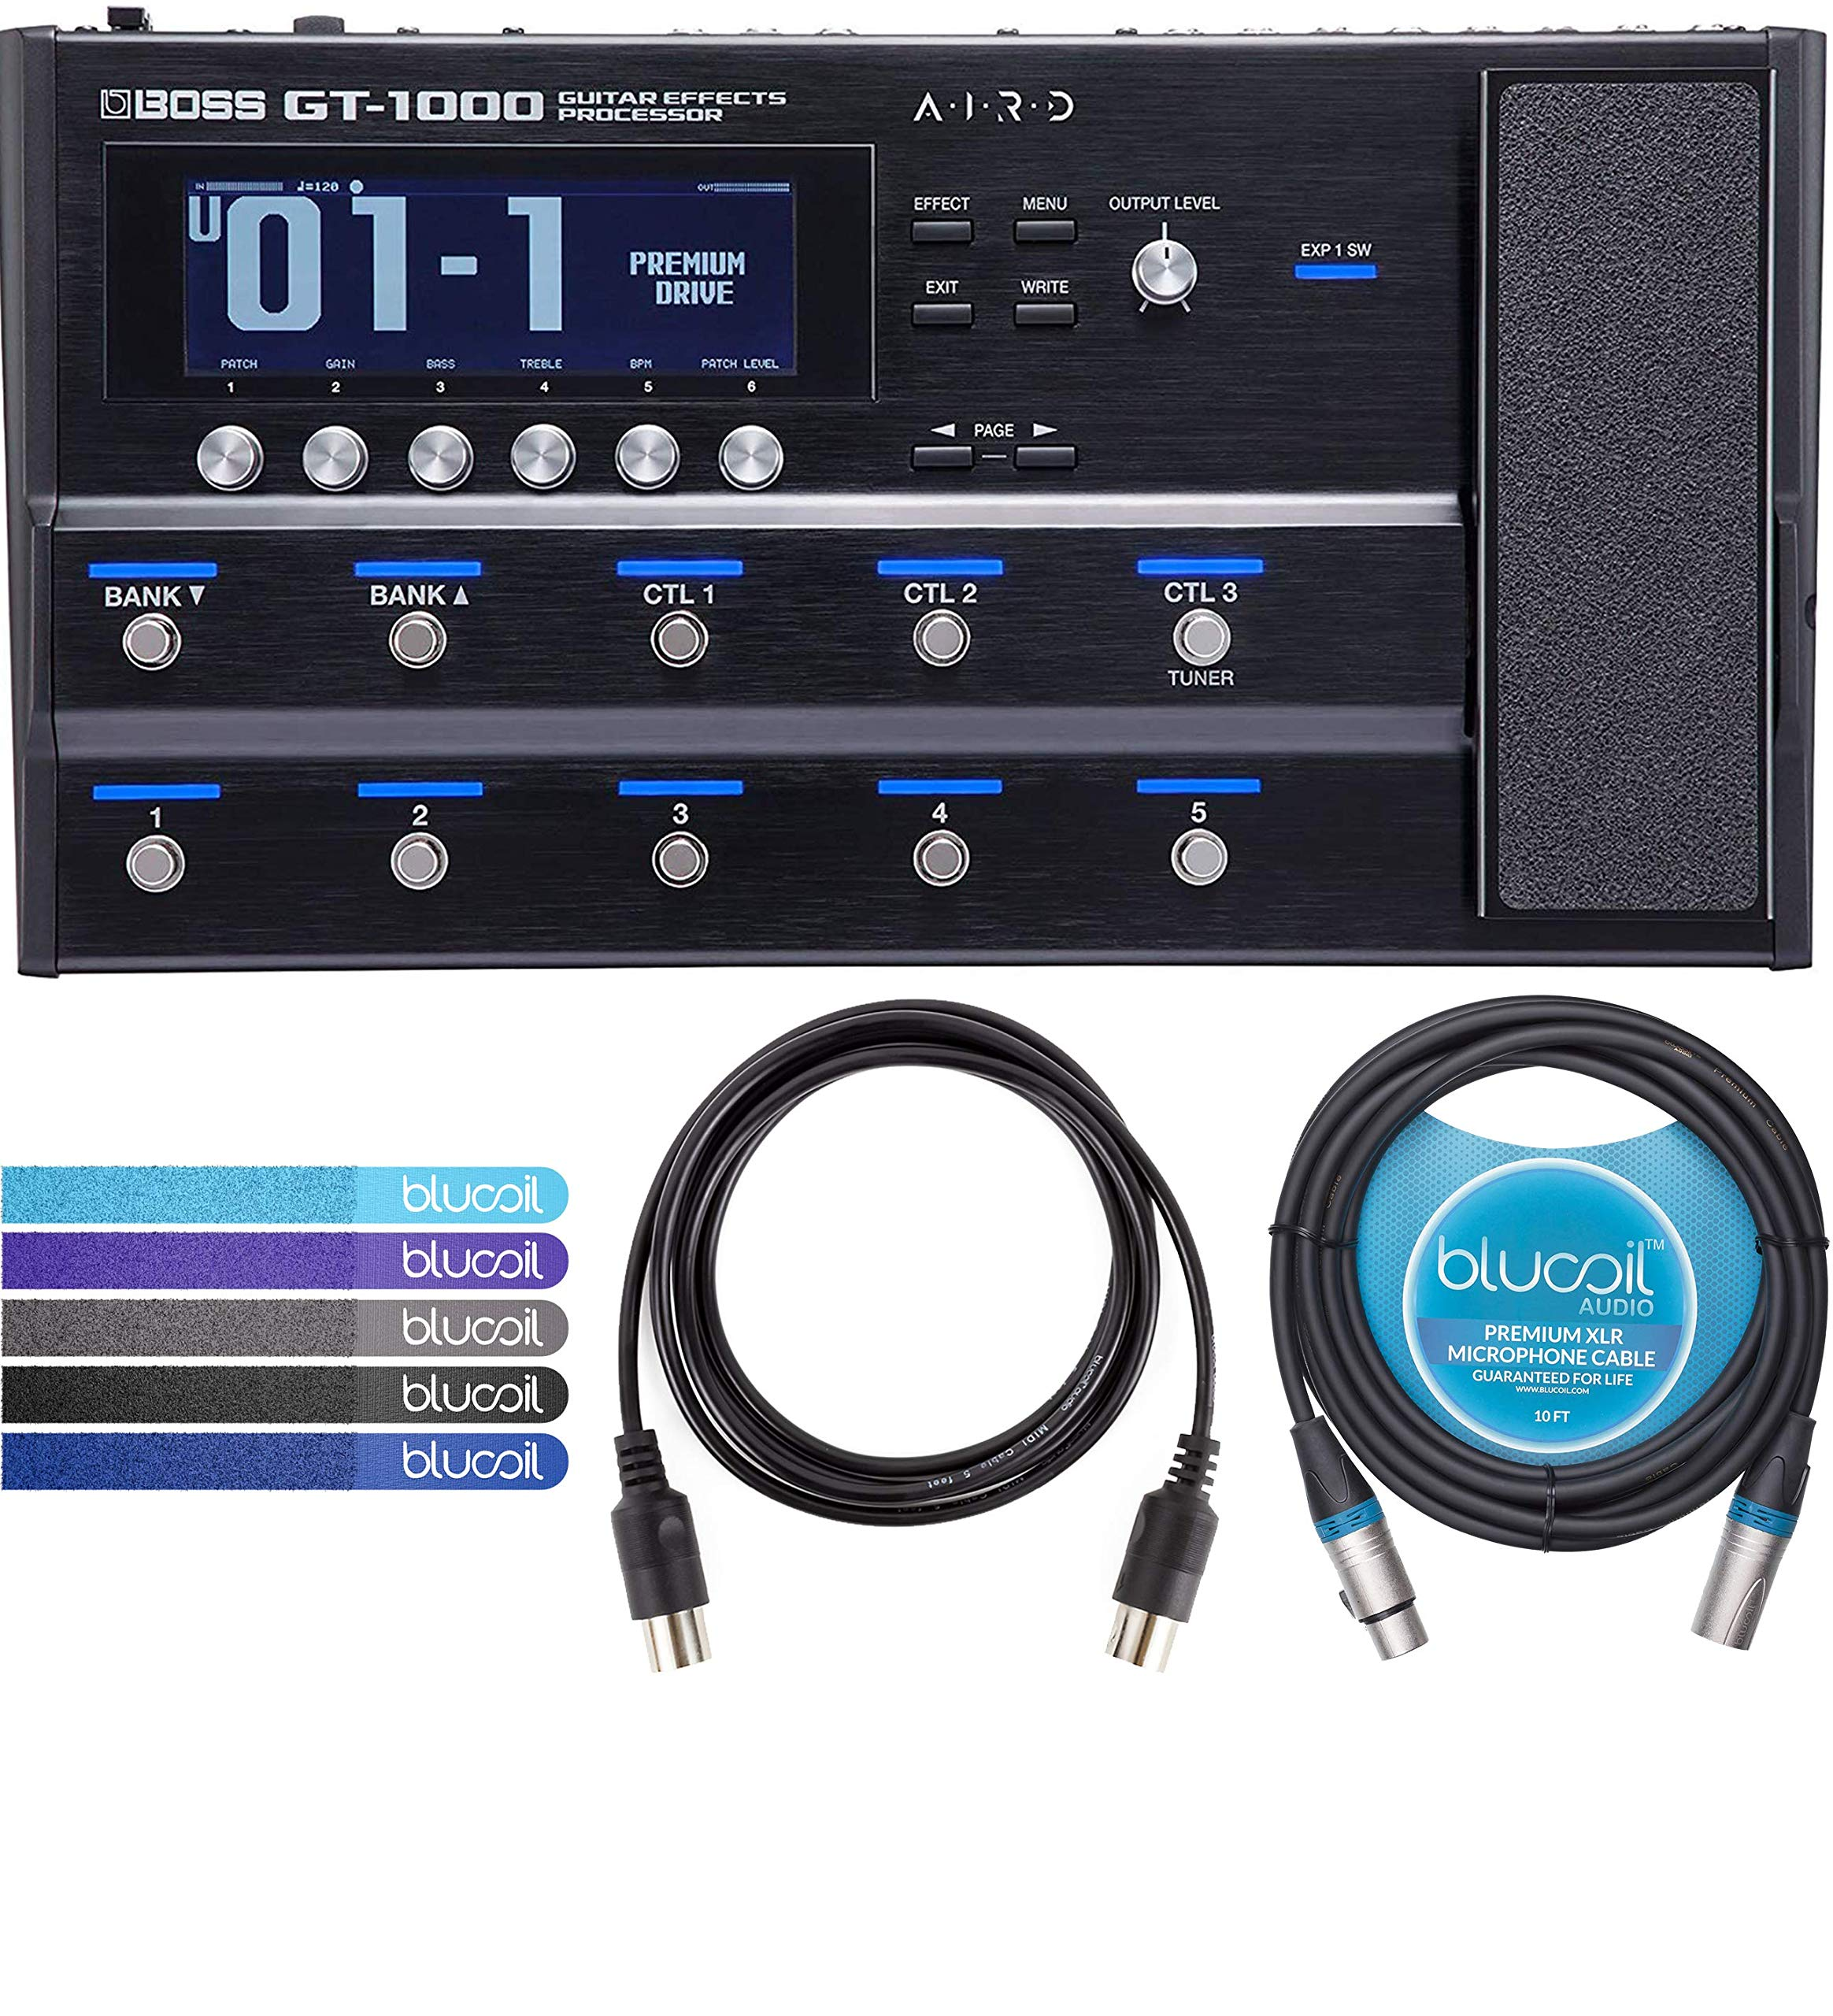 BOSS GT-1000 Multi Effects Processor with Expression Pedal for Guitars Bundle with Blucoil 10-Ft Balanced XLR Cable, 5-Ft MIDI Cable and 5-Pack of Reusable Cable Ties